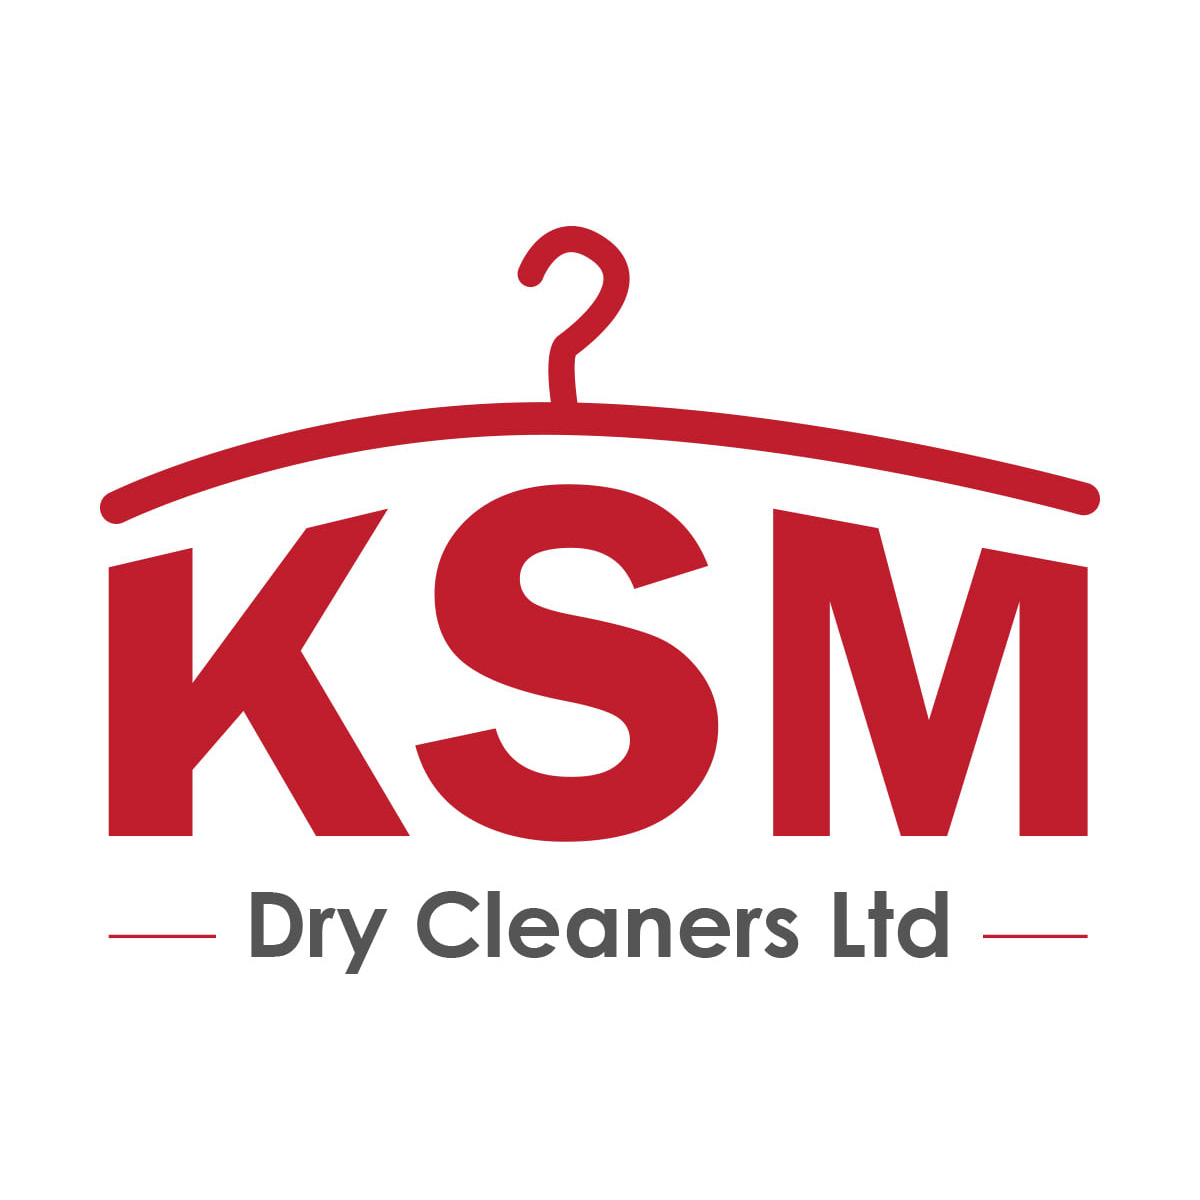 KSM Dry Cleaners Ltd - Doncaster, South Yorkshire DN3 3DL - 01302 832807 | ShowMeLocal.com